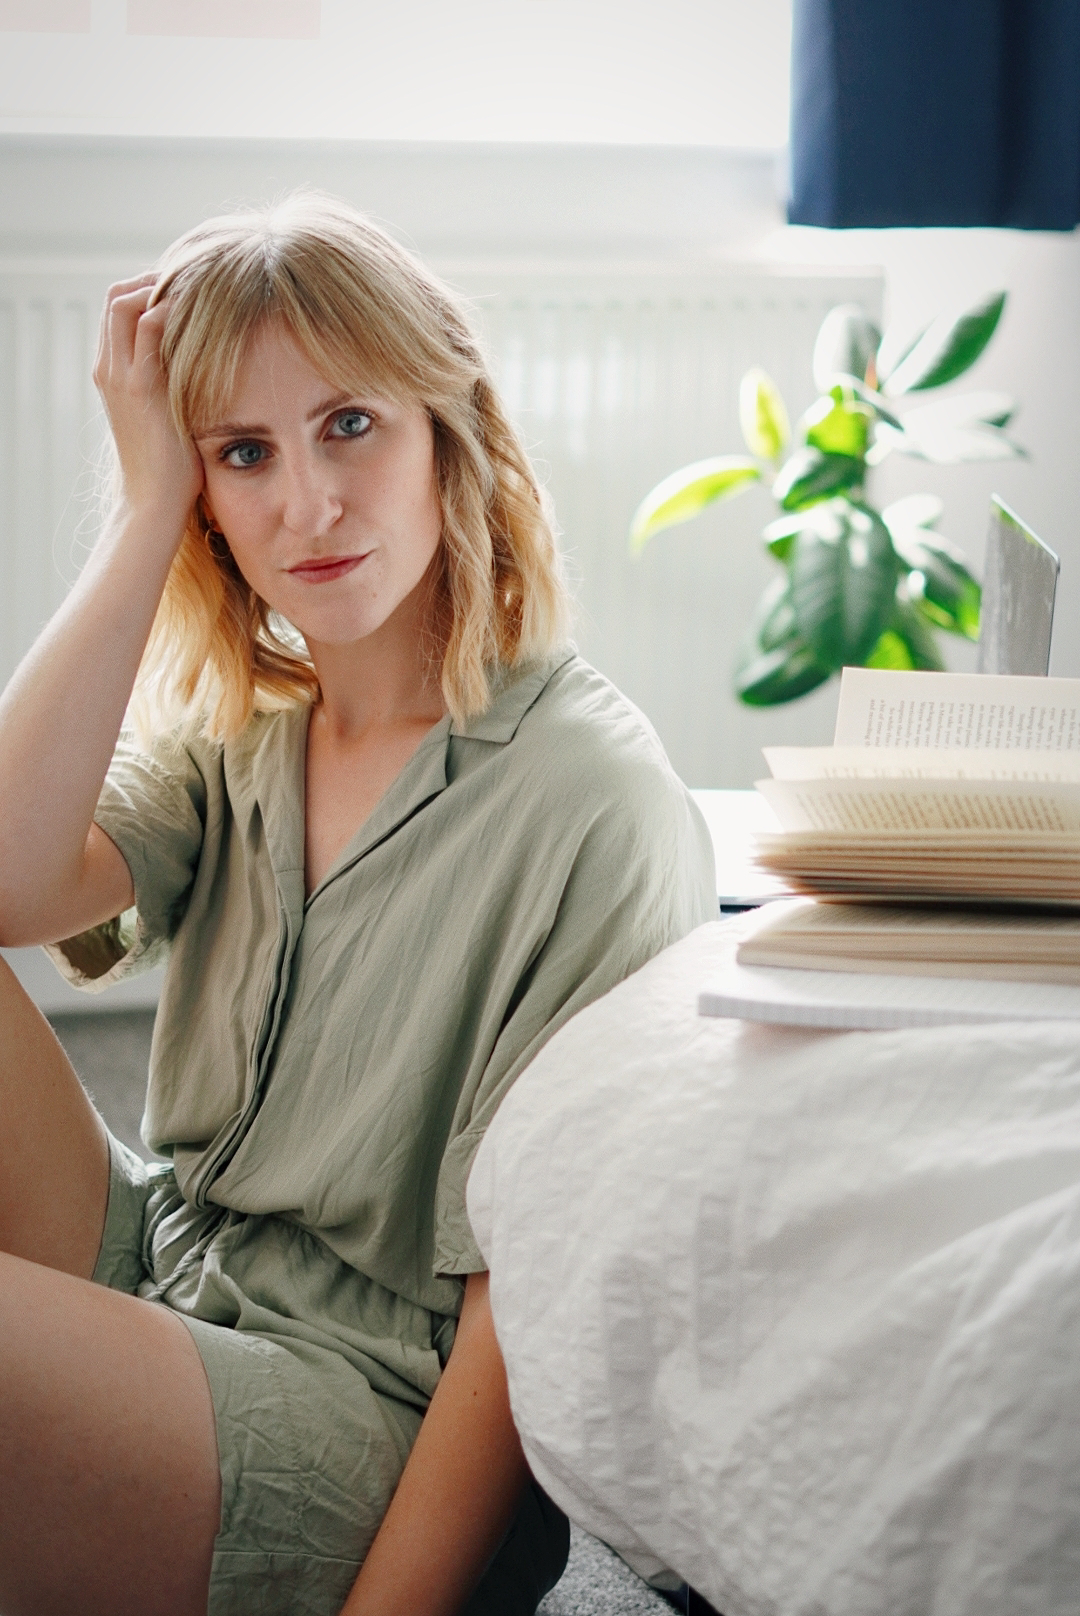 Amy is sitting on the floor next to the bed, wearing a pale green playsuit with her head resting on her hand looking to camera. Next to her are a notebook, book and laptop.